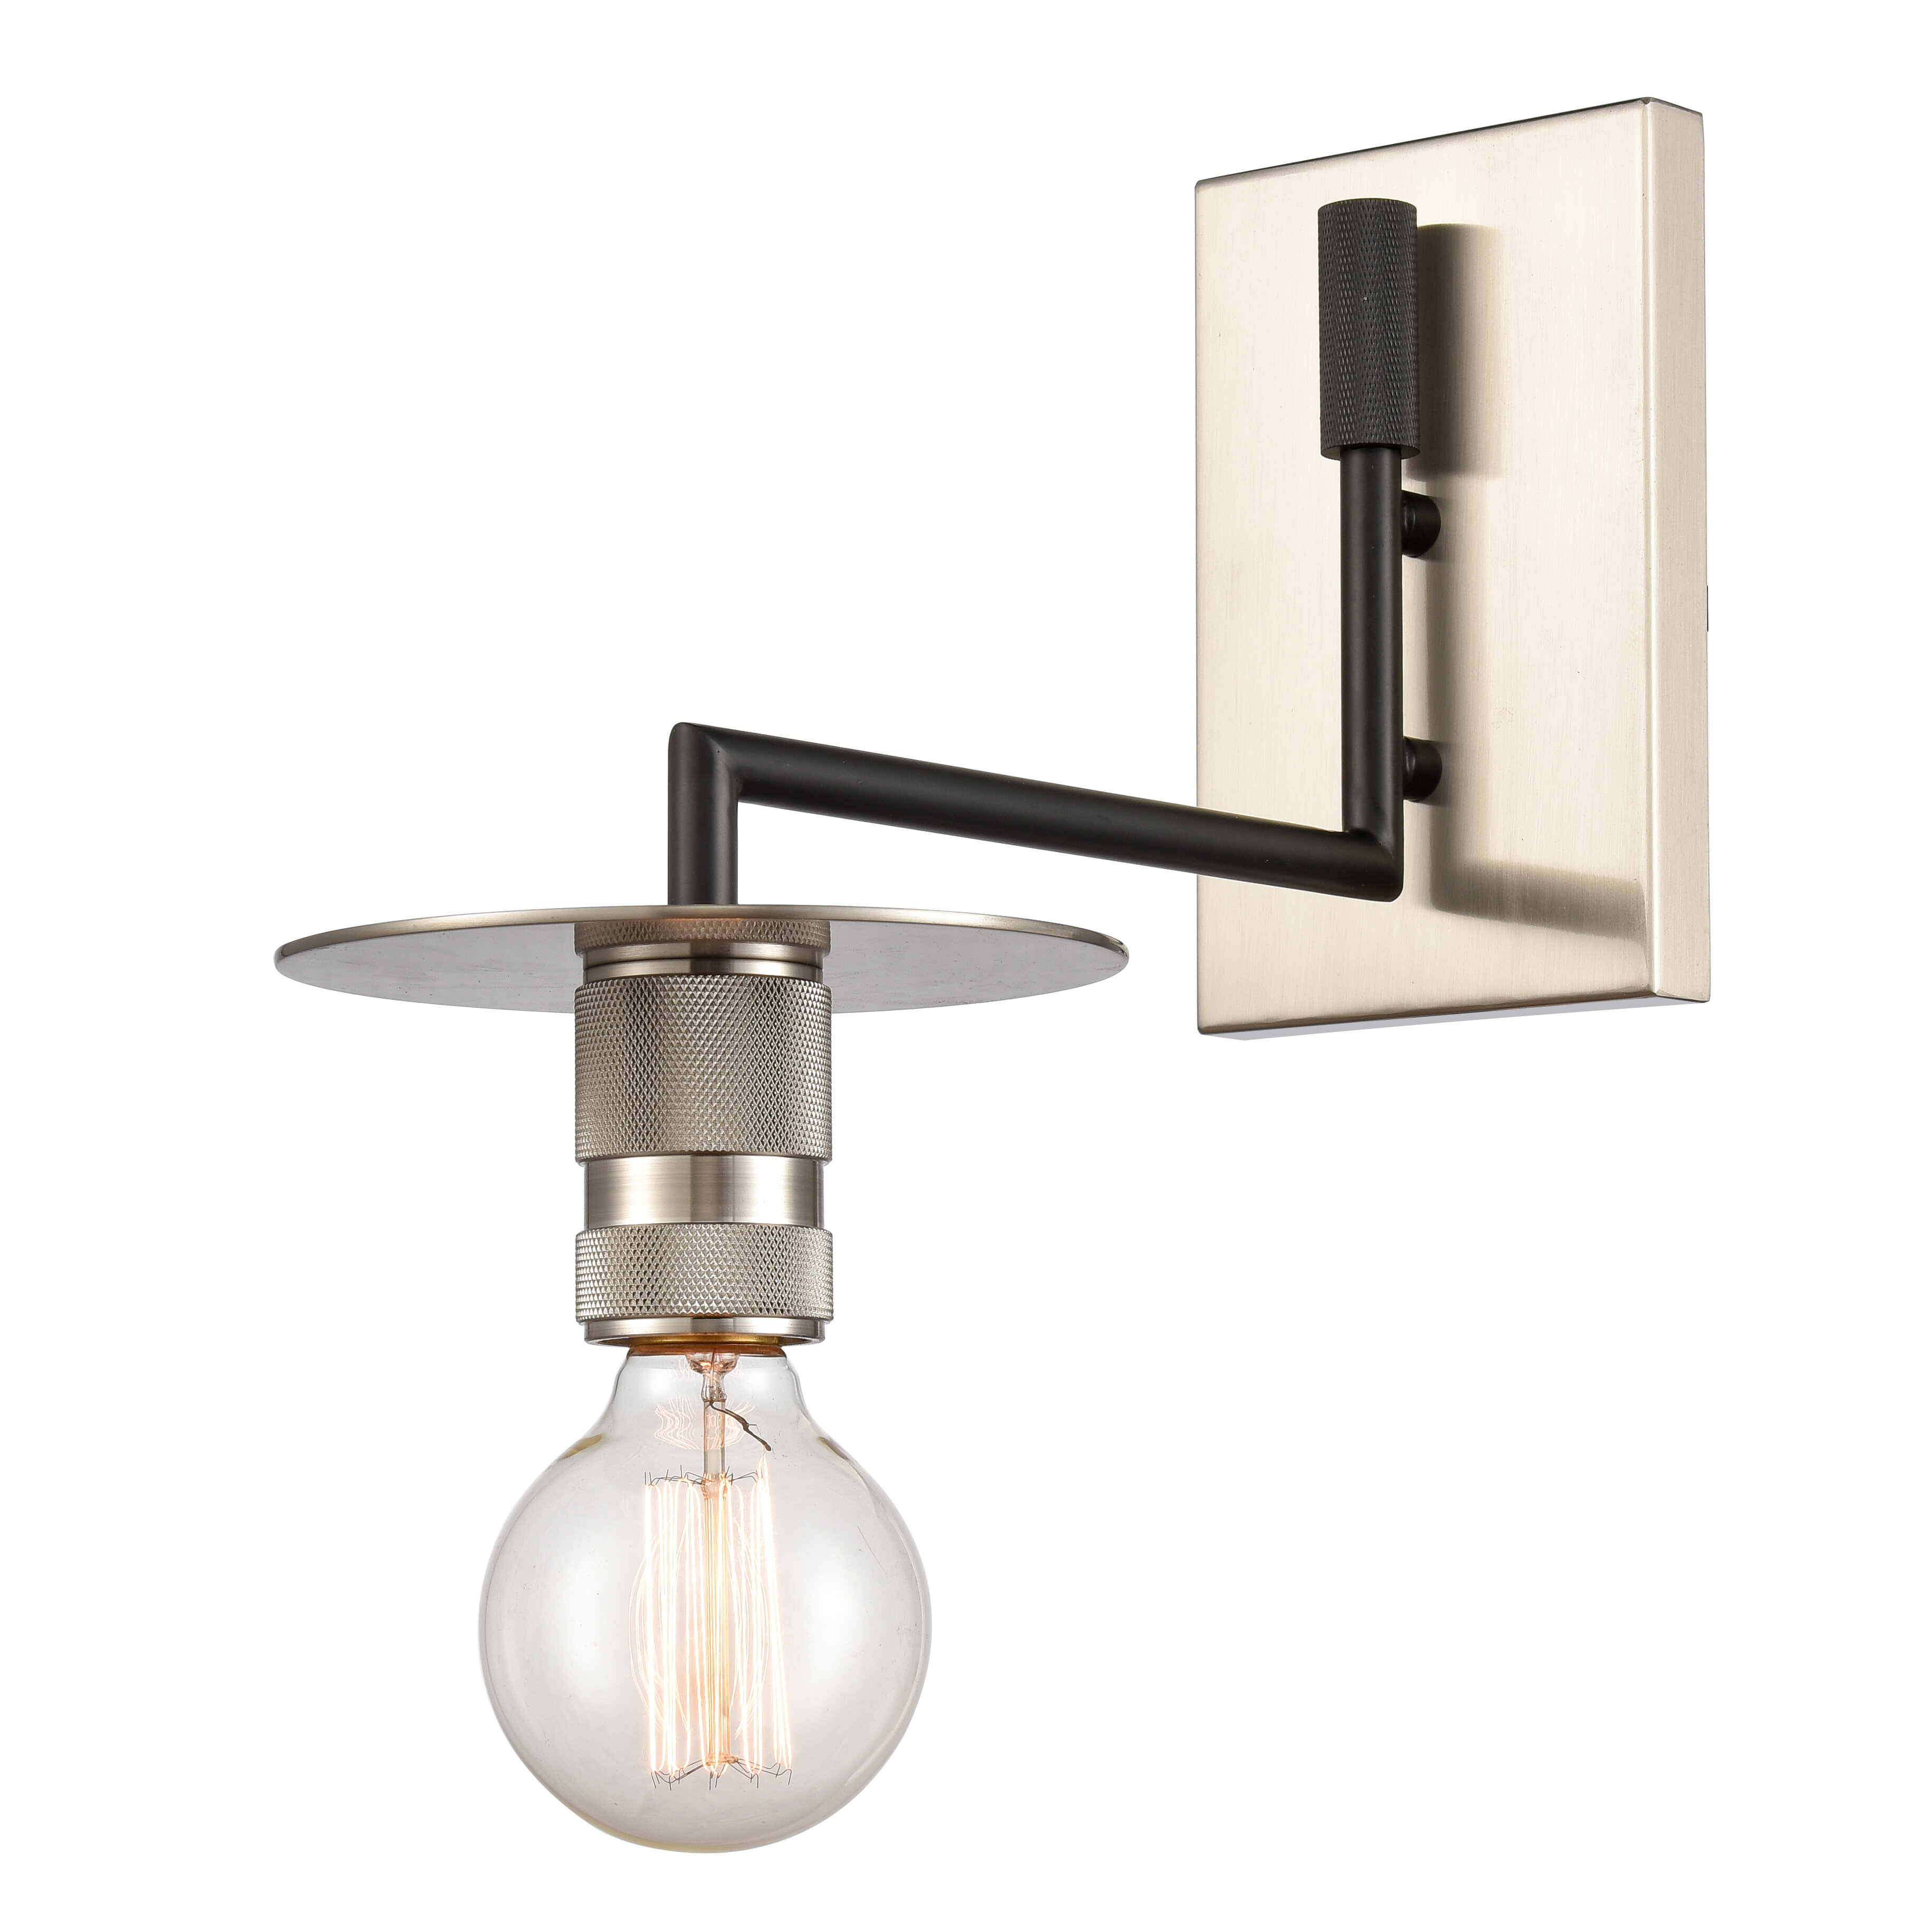 Breakwater Bay Yeager 1 Light Dimmable Armed Sconce Wayfair